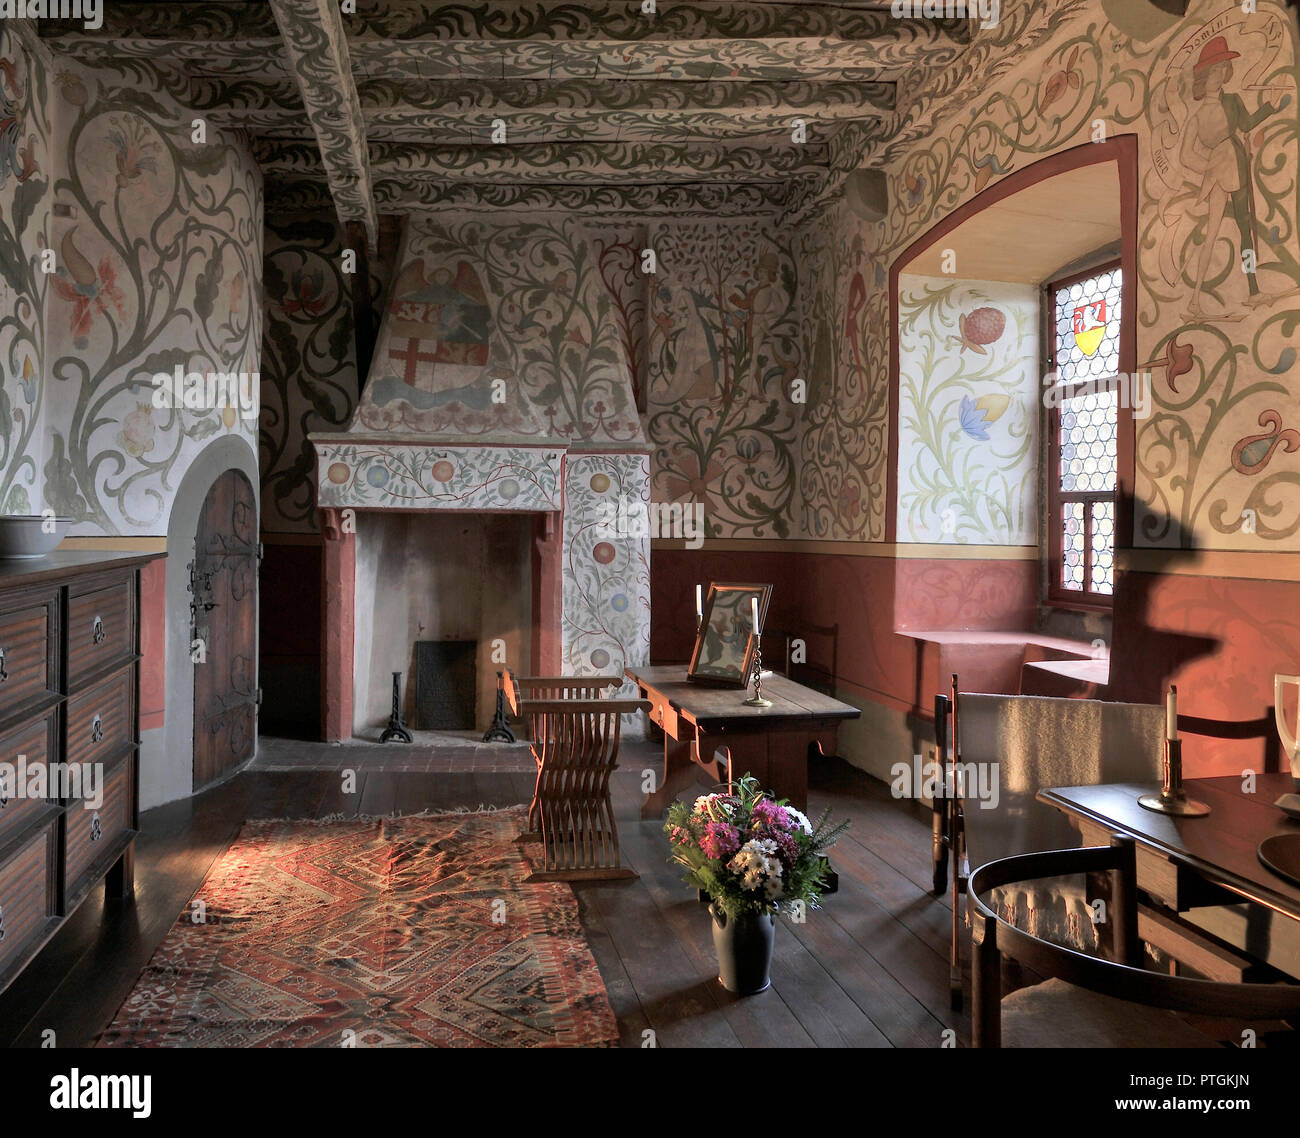 Wierschem Burg Eltz Ankleidezimmer Stock Photo 221642813 Alamy